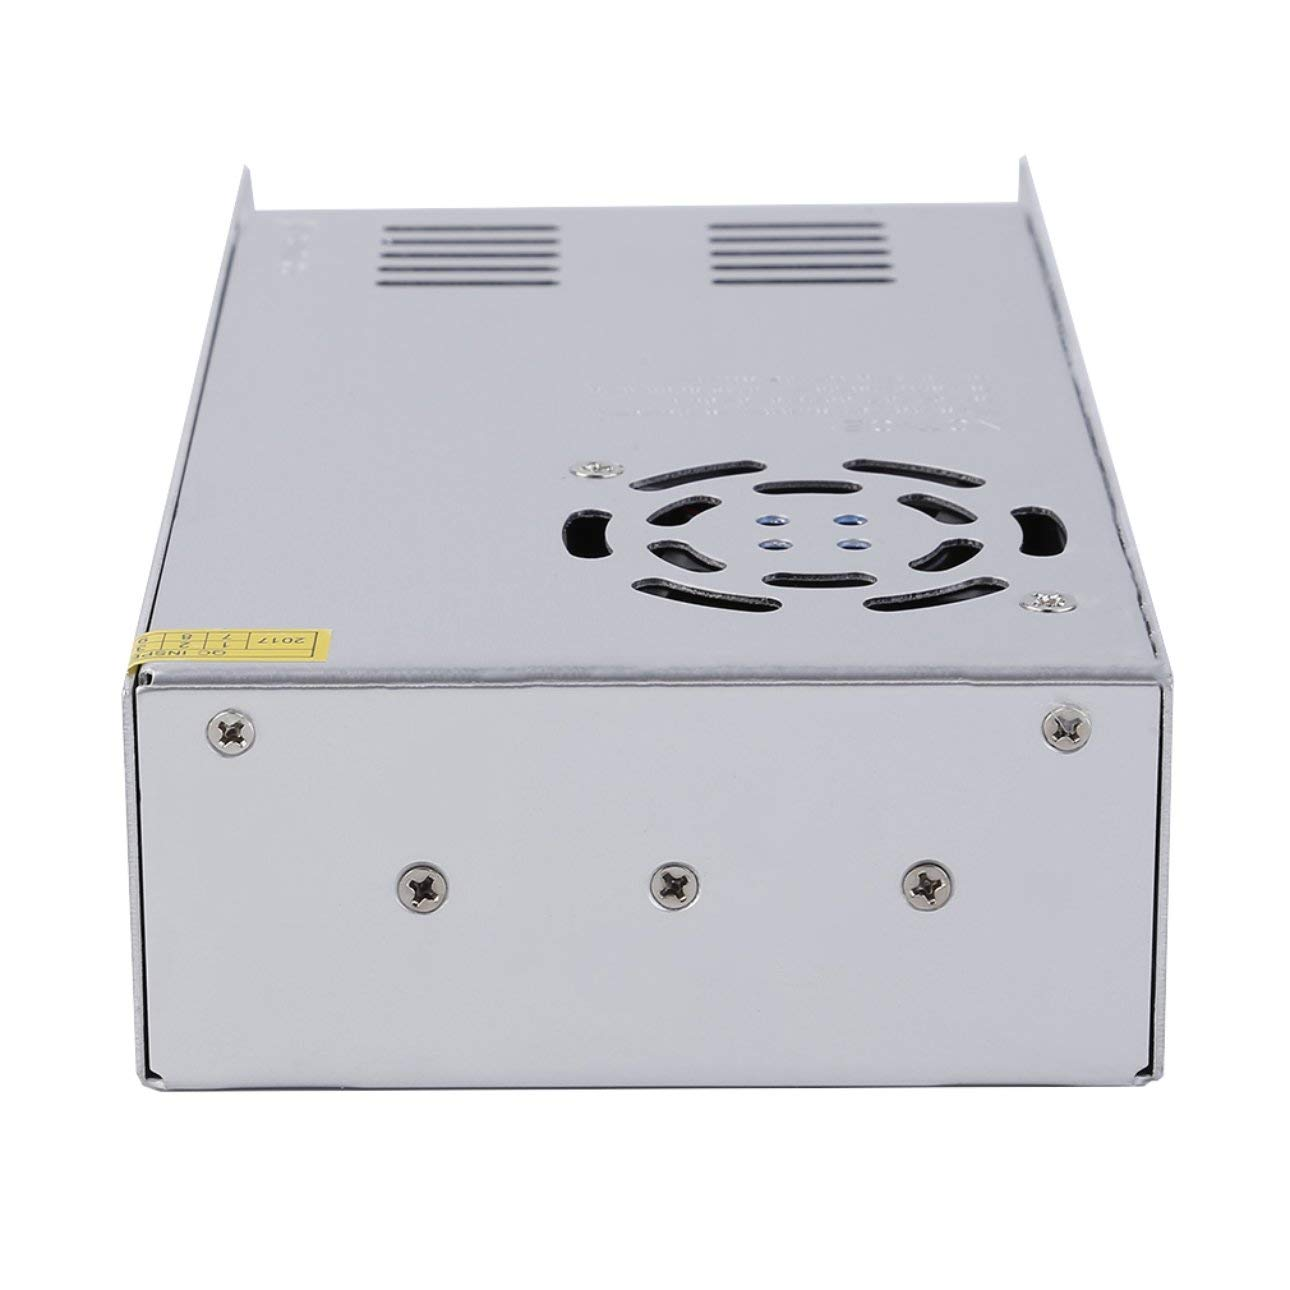 Liobaba DC 48V 10A Universal Regulated Switching Power Supply for Computer Project